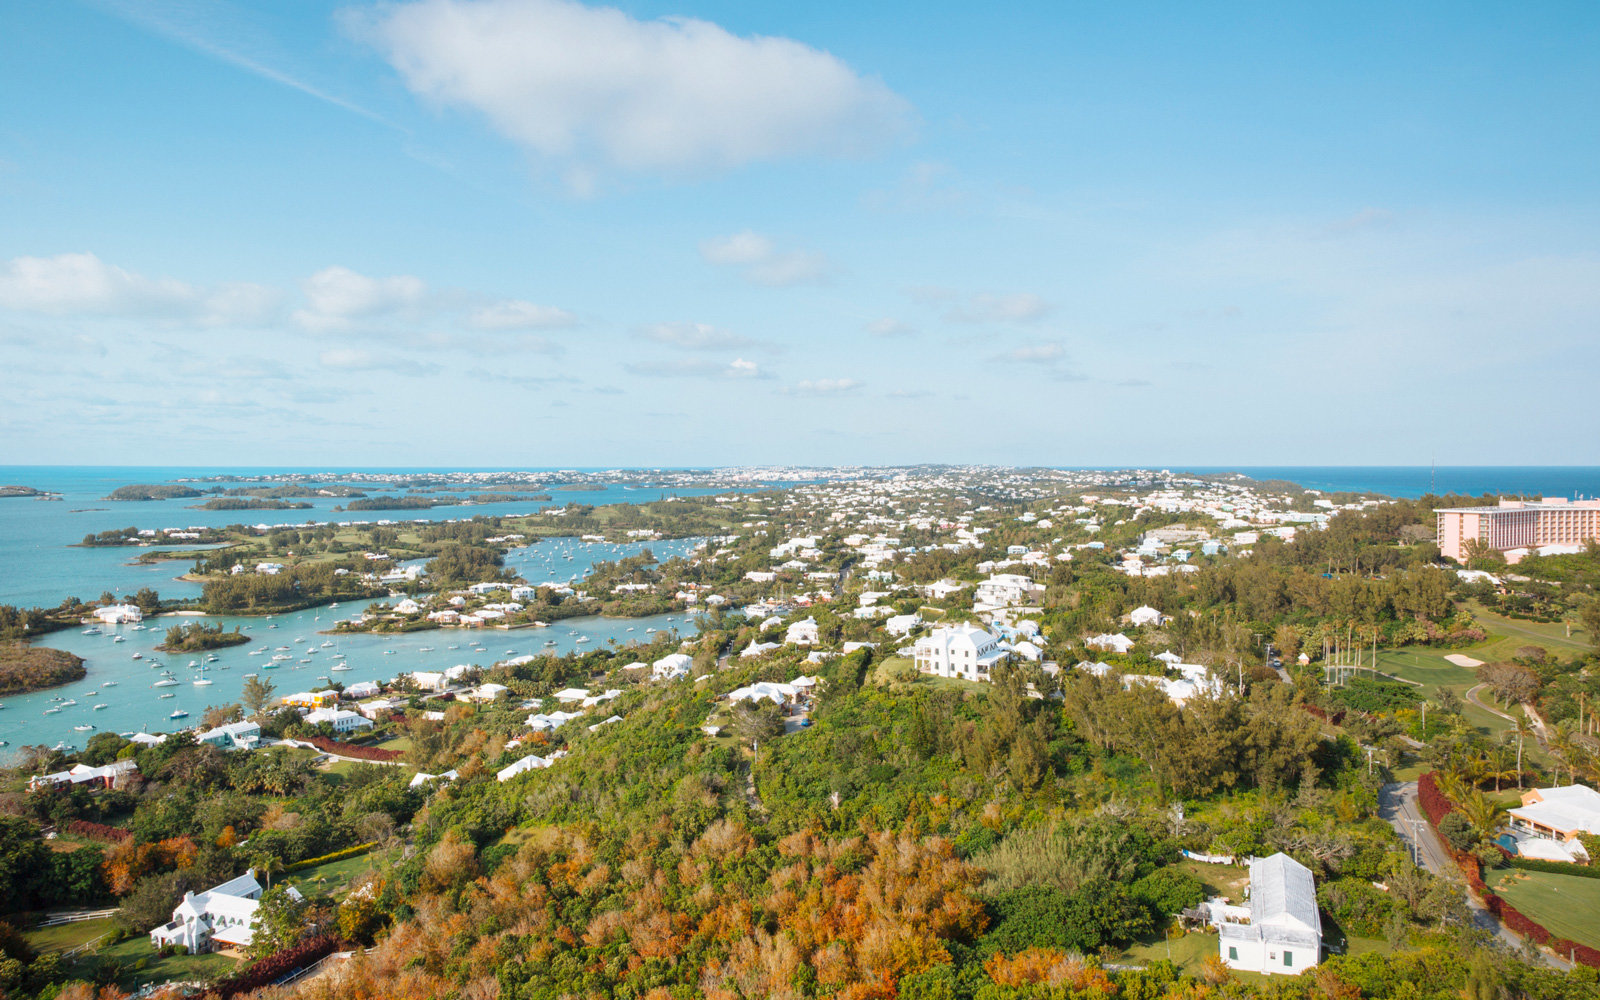 South Hampton Parish, Bermuda